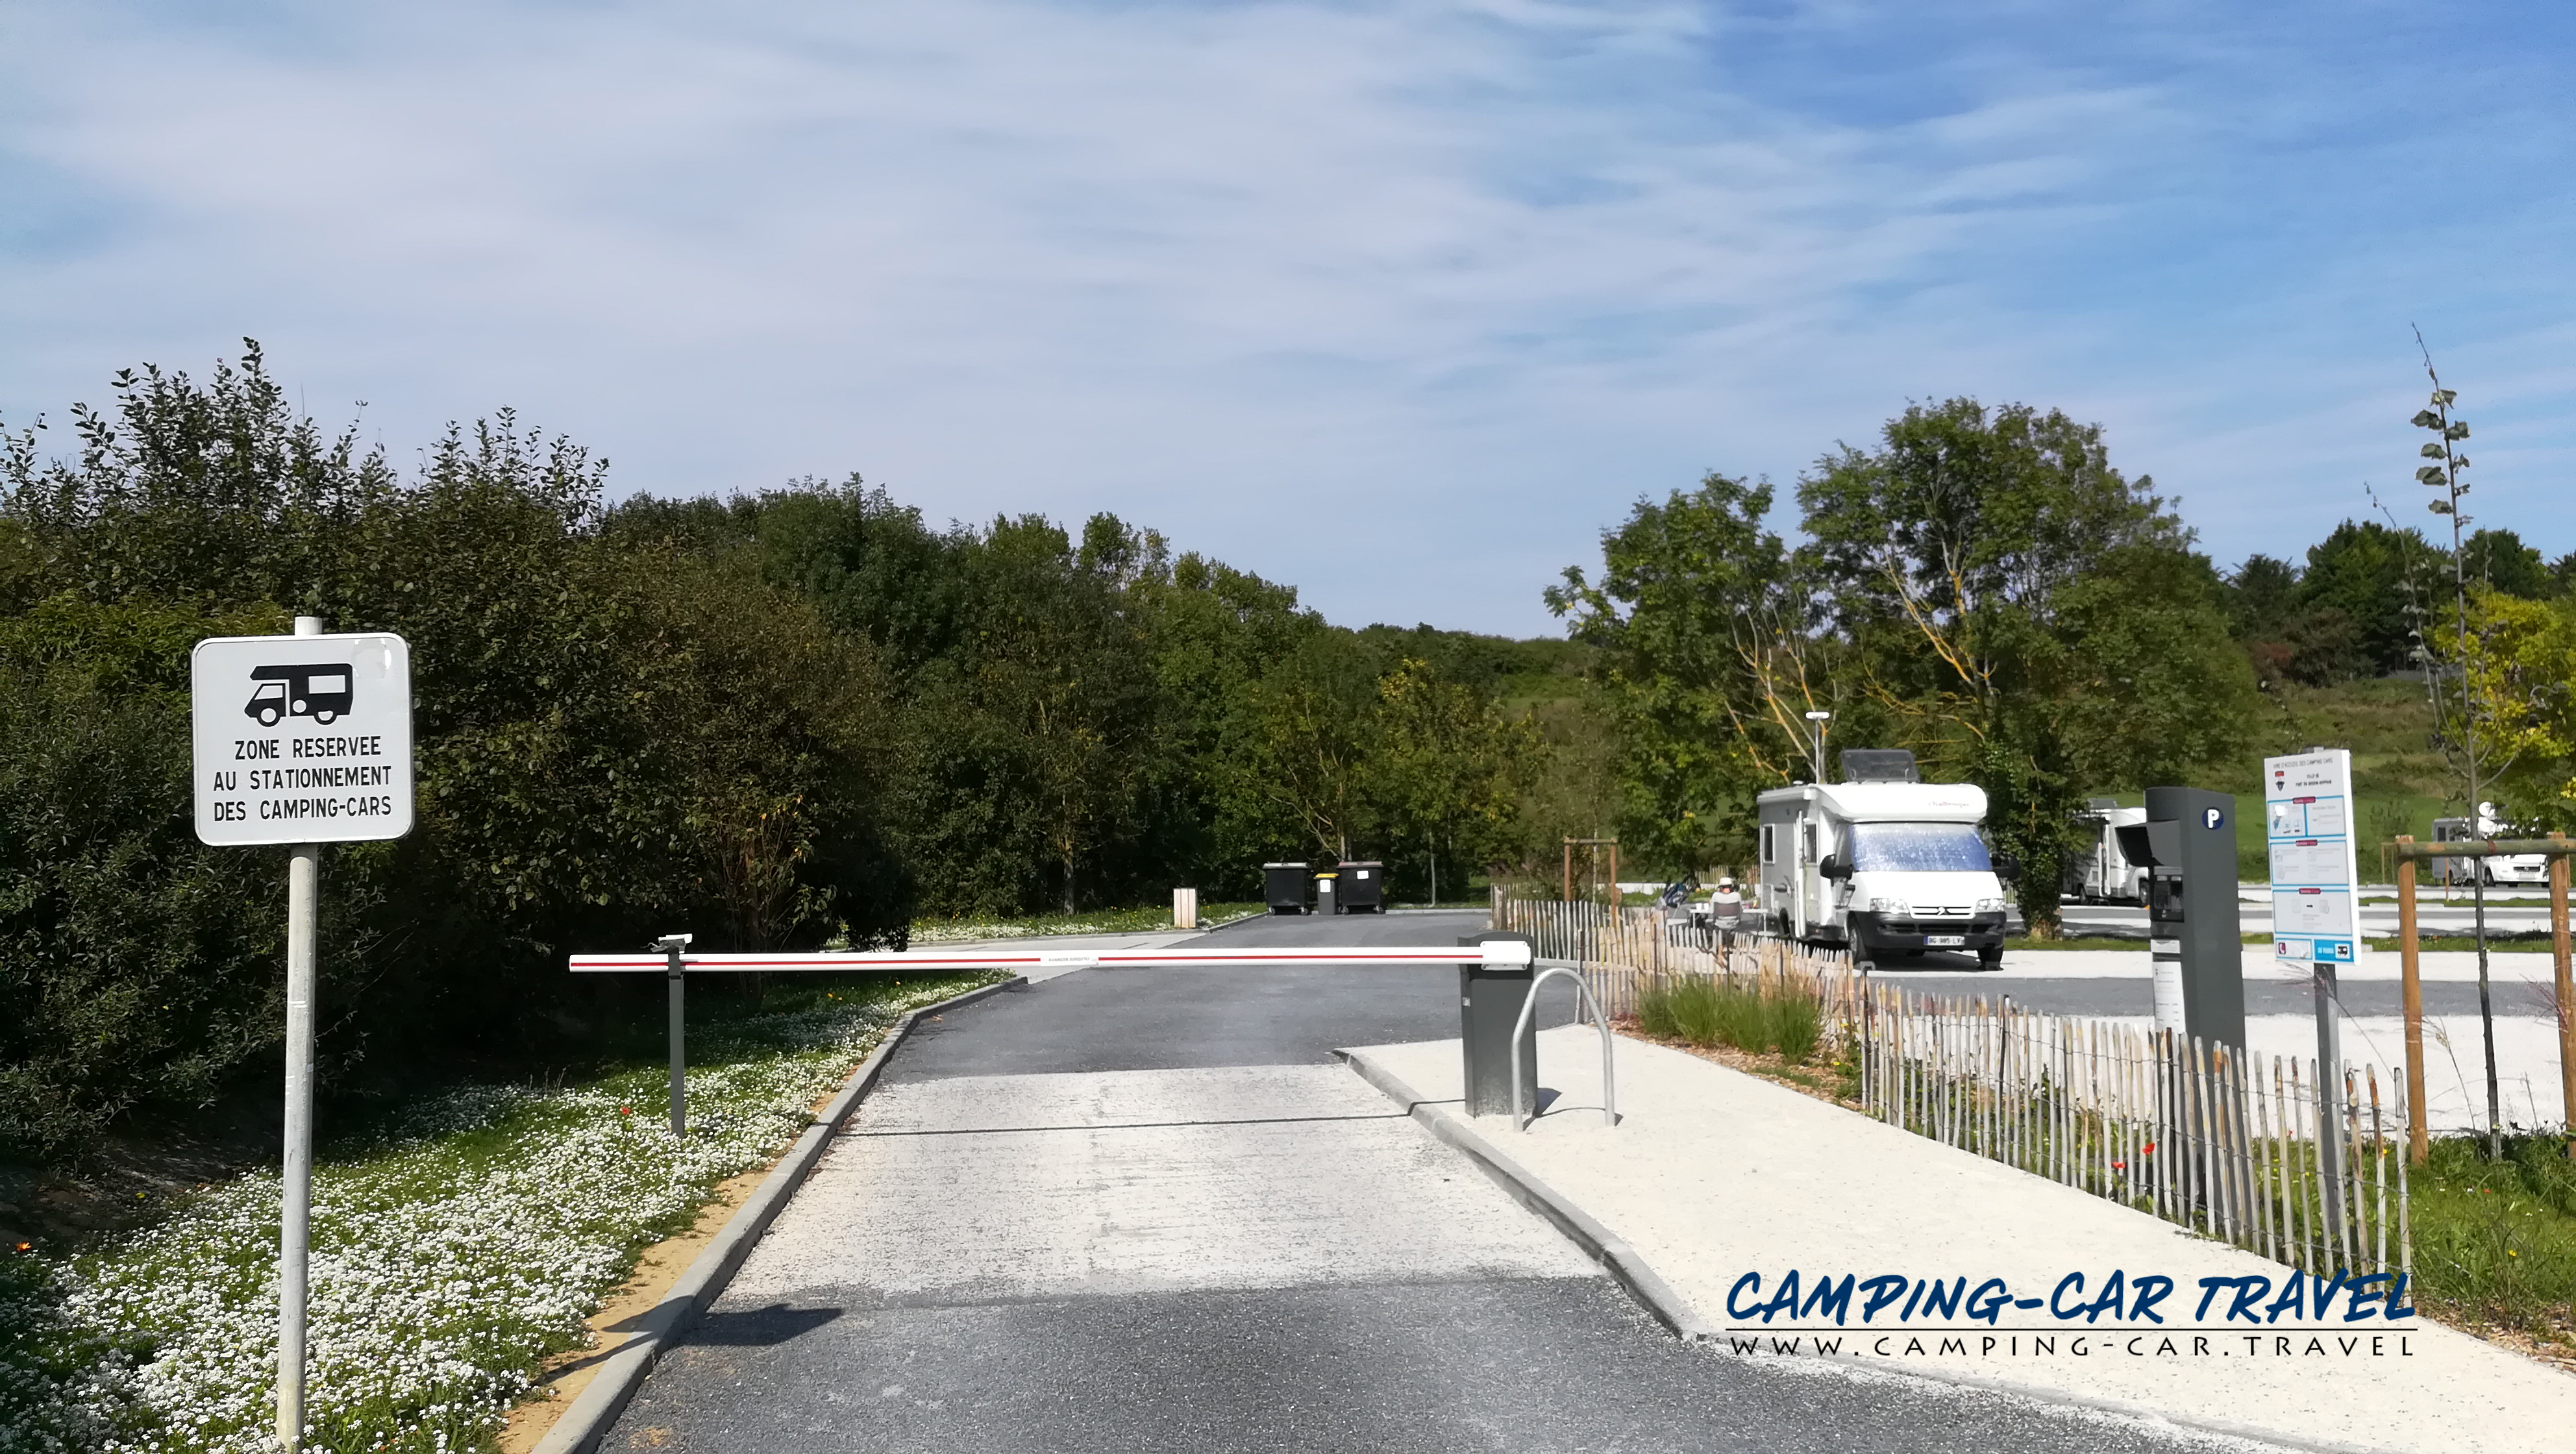 aire services camping cars Port-en-Bessin-Huppain Calvados Normandie